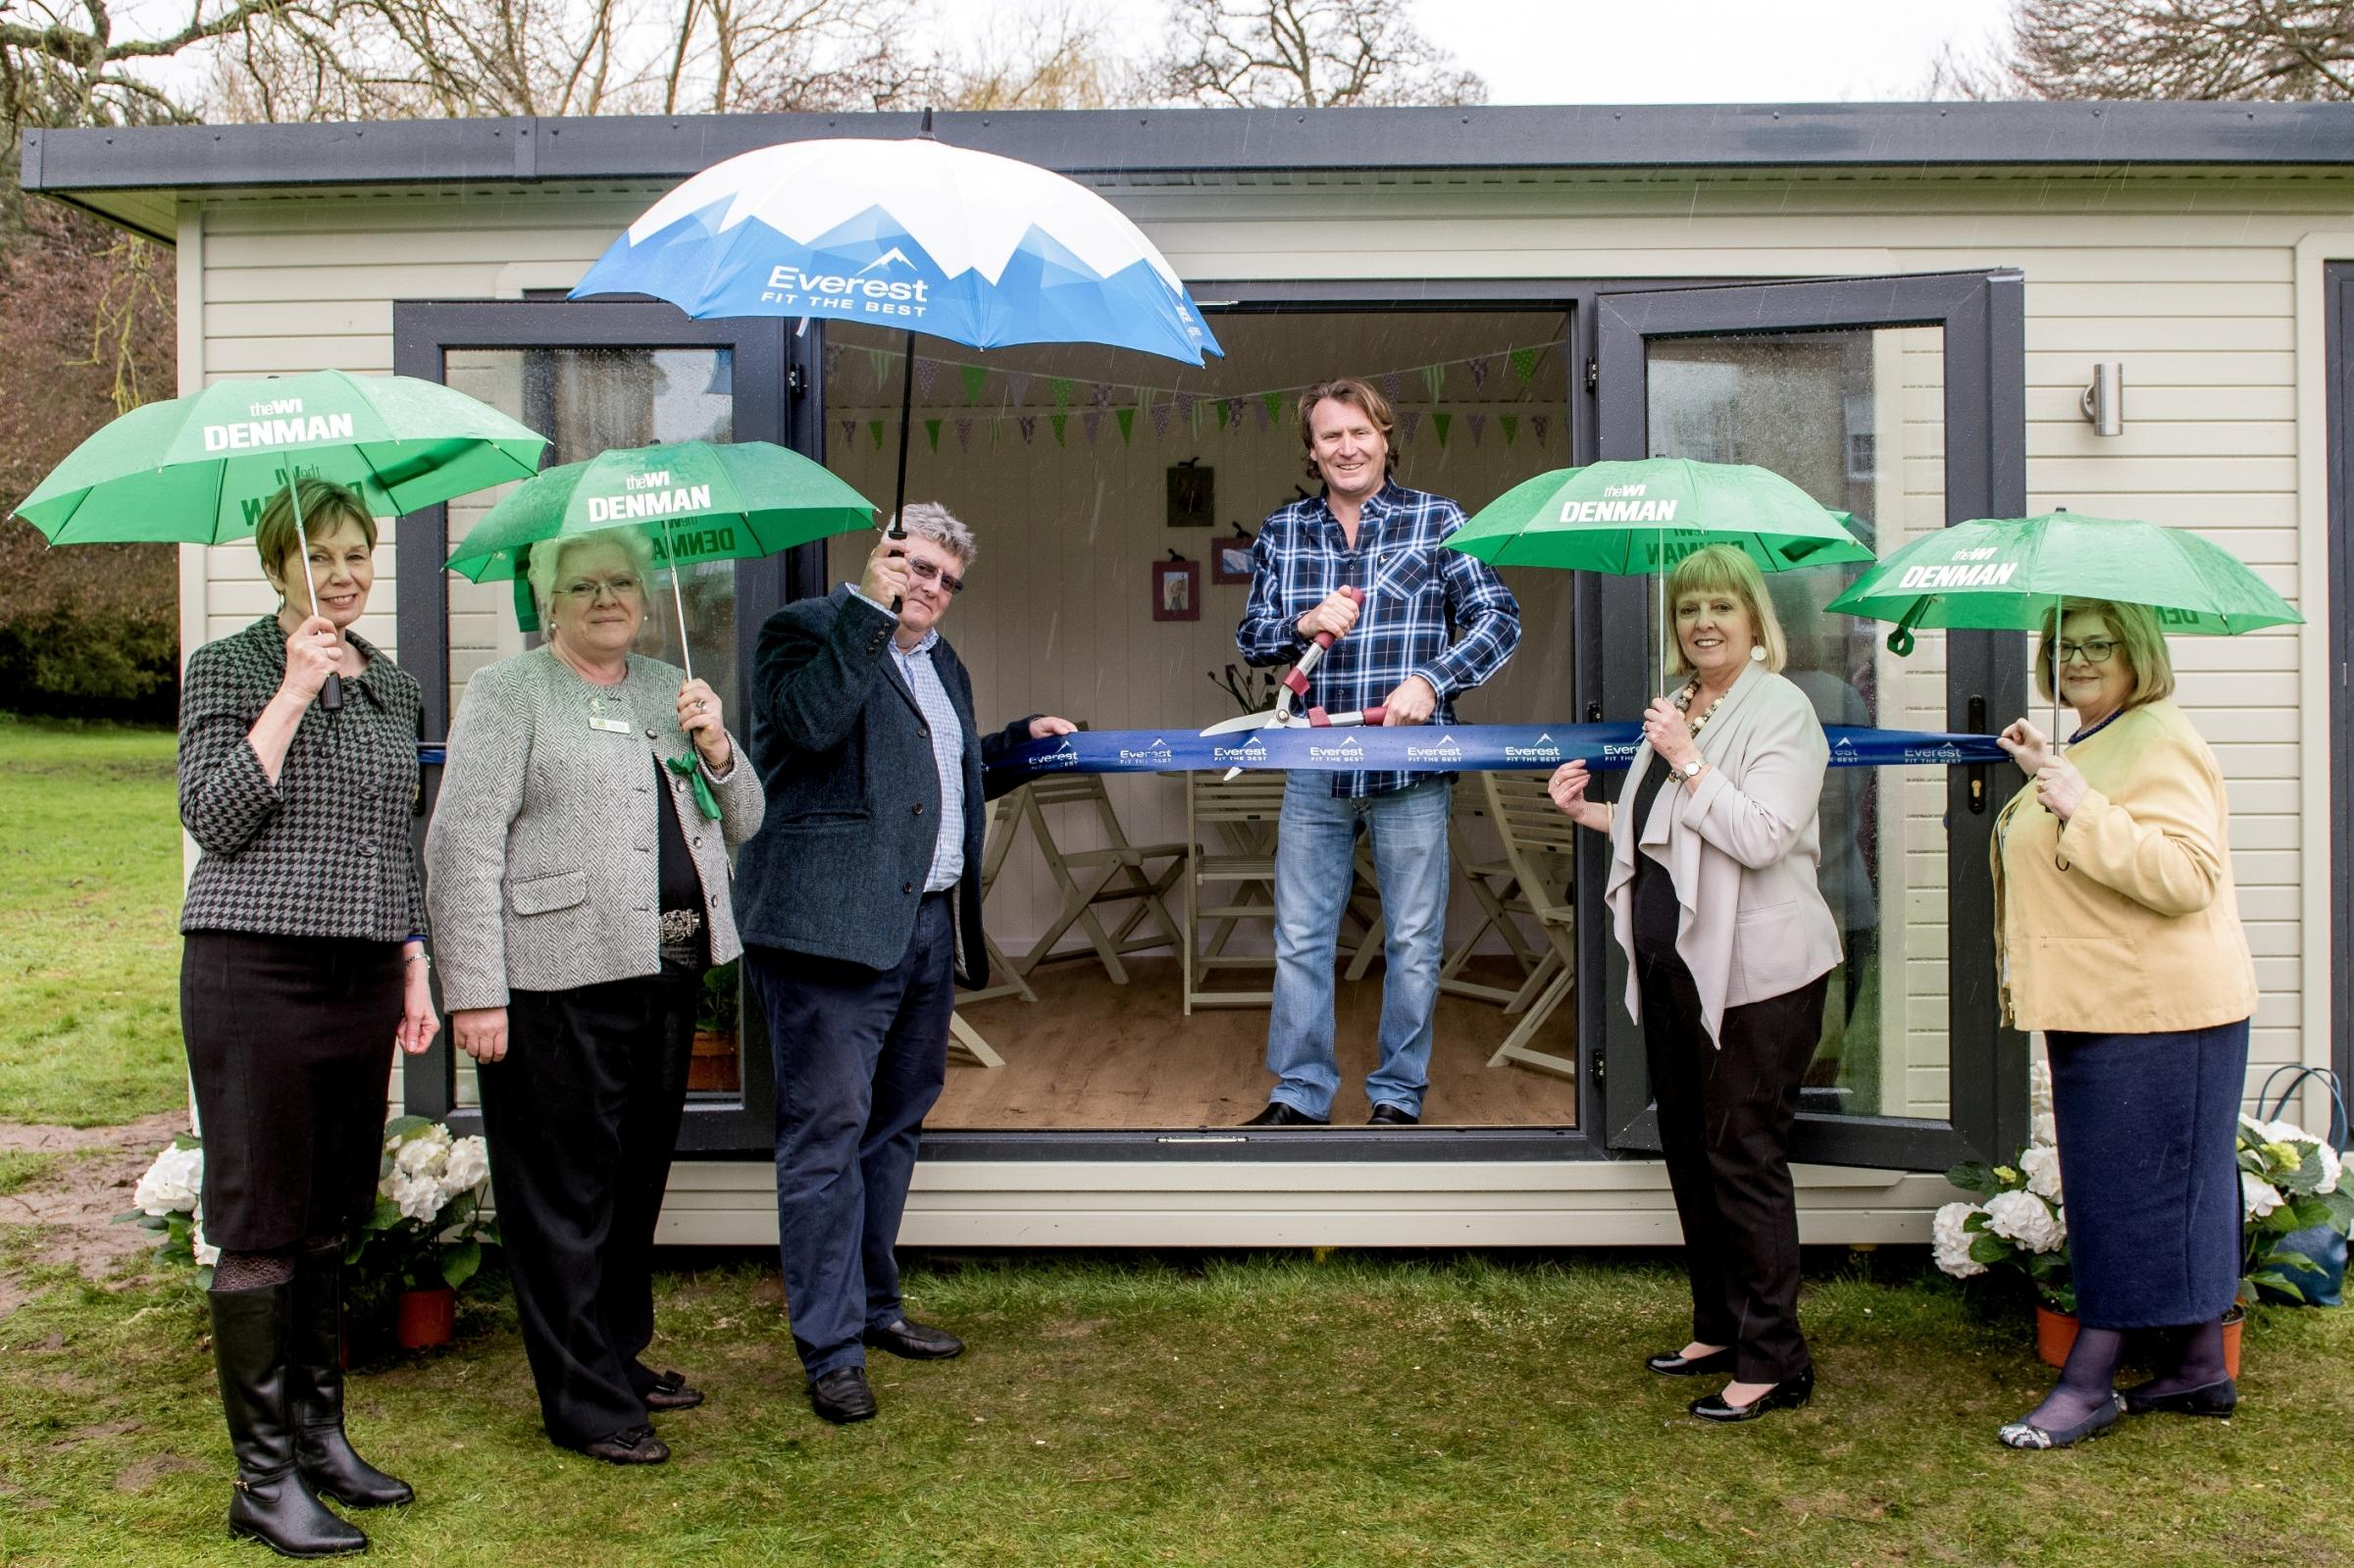 TV presenter David Domoney cuts the ribbon on the new Denman College garden room on April 9, 2018, with, left to right, Head of Denman Jane Dixon, NFWI board member Jeryl Stone, Everest marketing director Martin Troughton and NFWI board members Sue Wilson